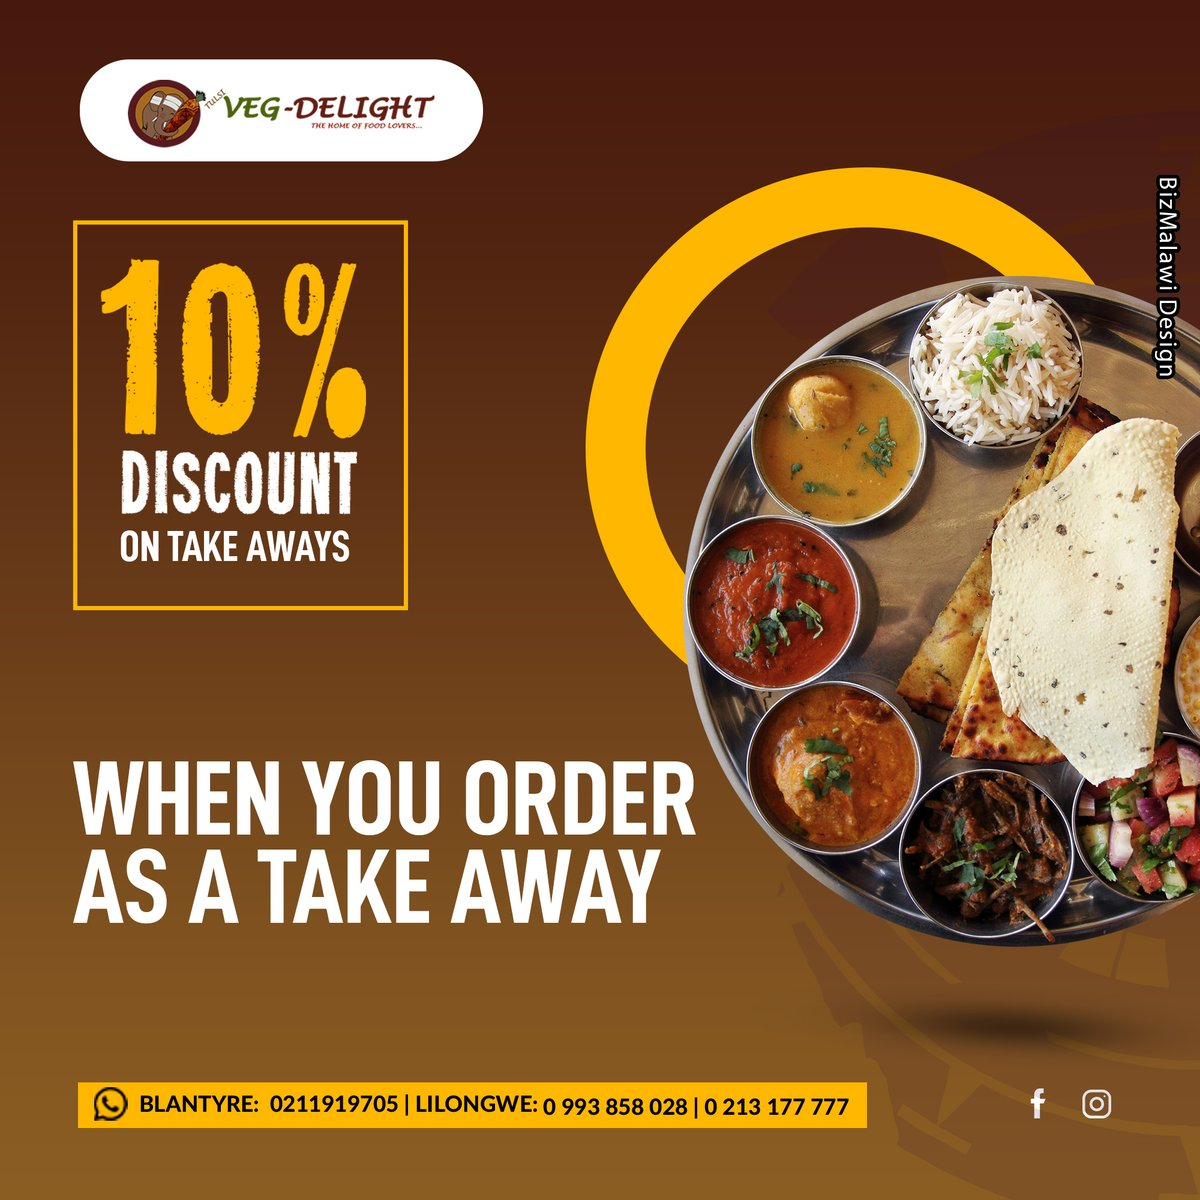 Veg Delight Imagine eating this at home. 10% Discount on takeaway. FOR RESERVATIONS CONTACT US: Blantyre: 0211919705  Lilongwe: 0993858028 / 0213177777 More info:  #VegDelight #GoodFood #TastyFood #malawi #bizmalawi #mzuzu #lilongwe #blantyre